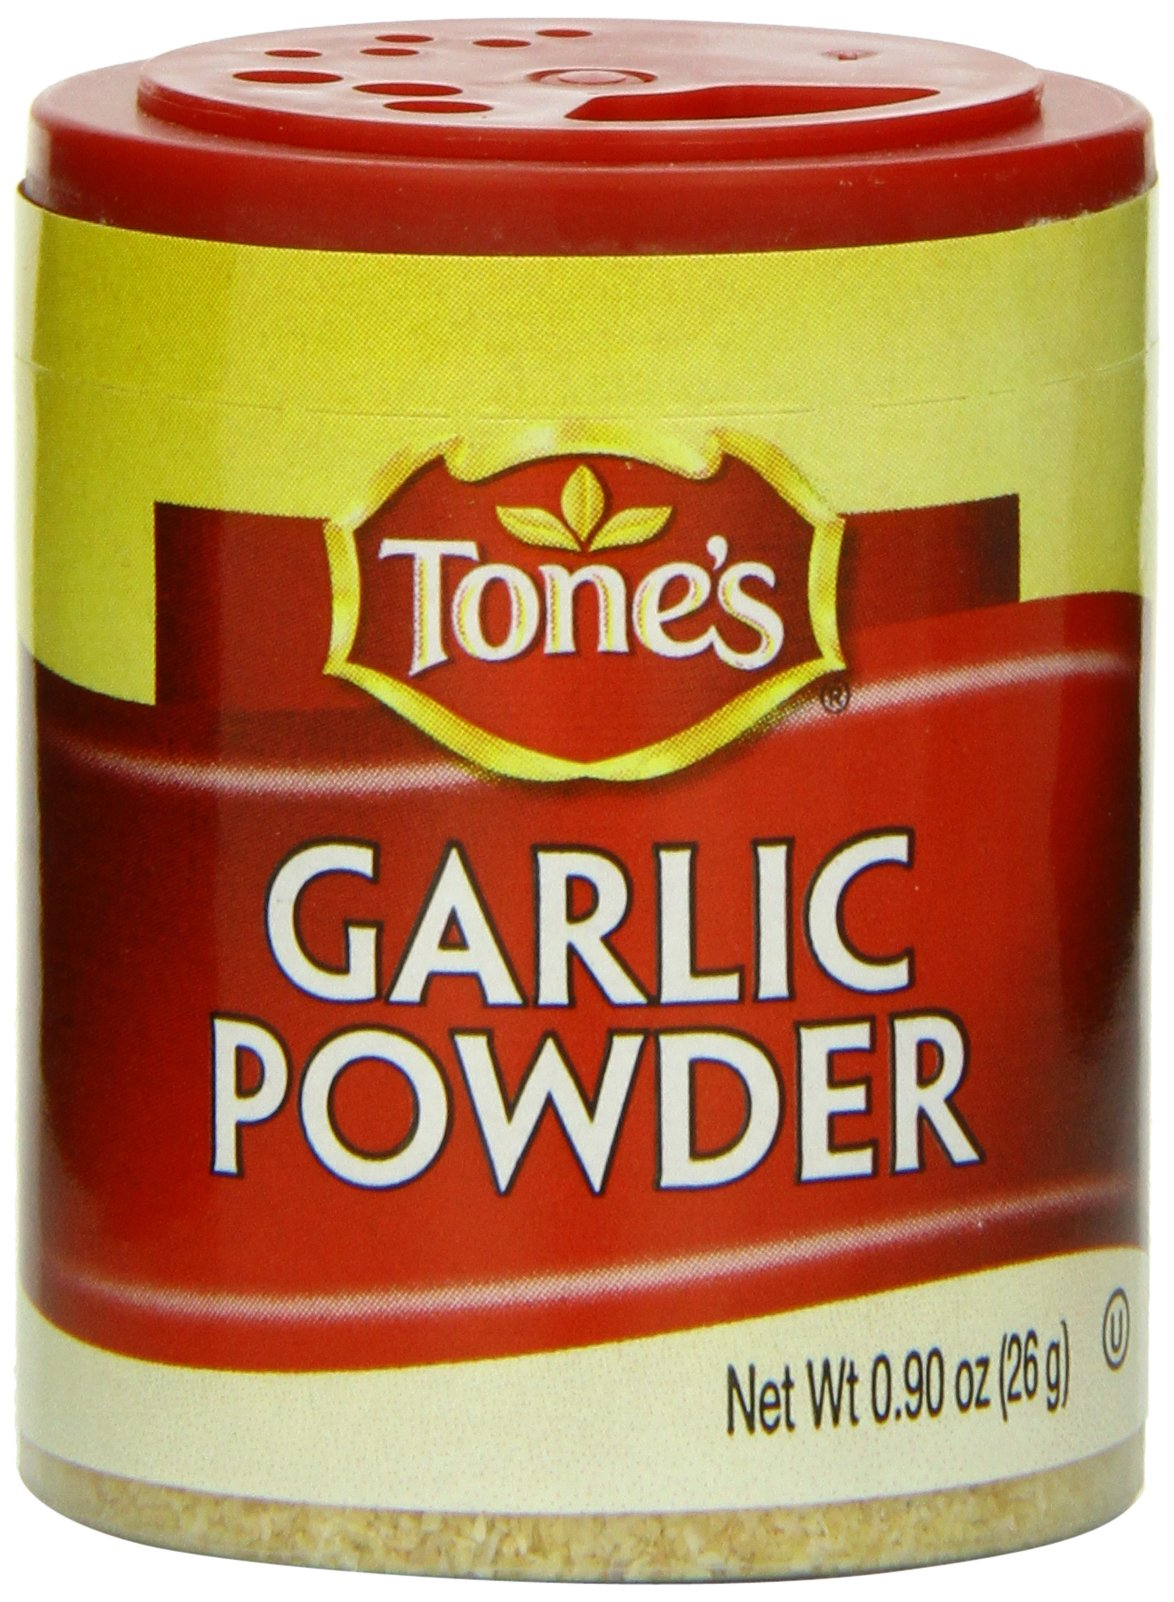 Tone's Mini's Garlic Powder, 0.90 Ounce (Pack of 6)